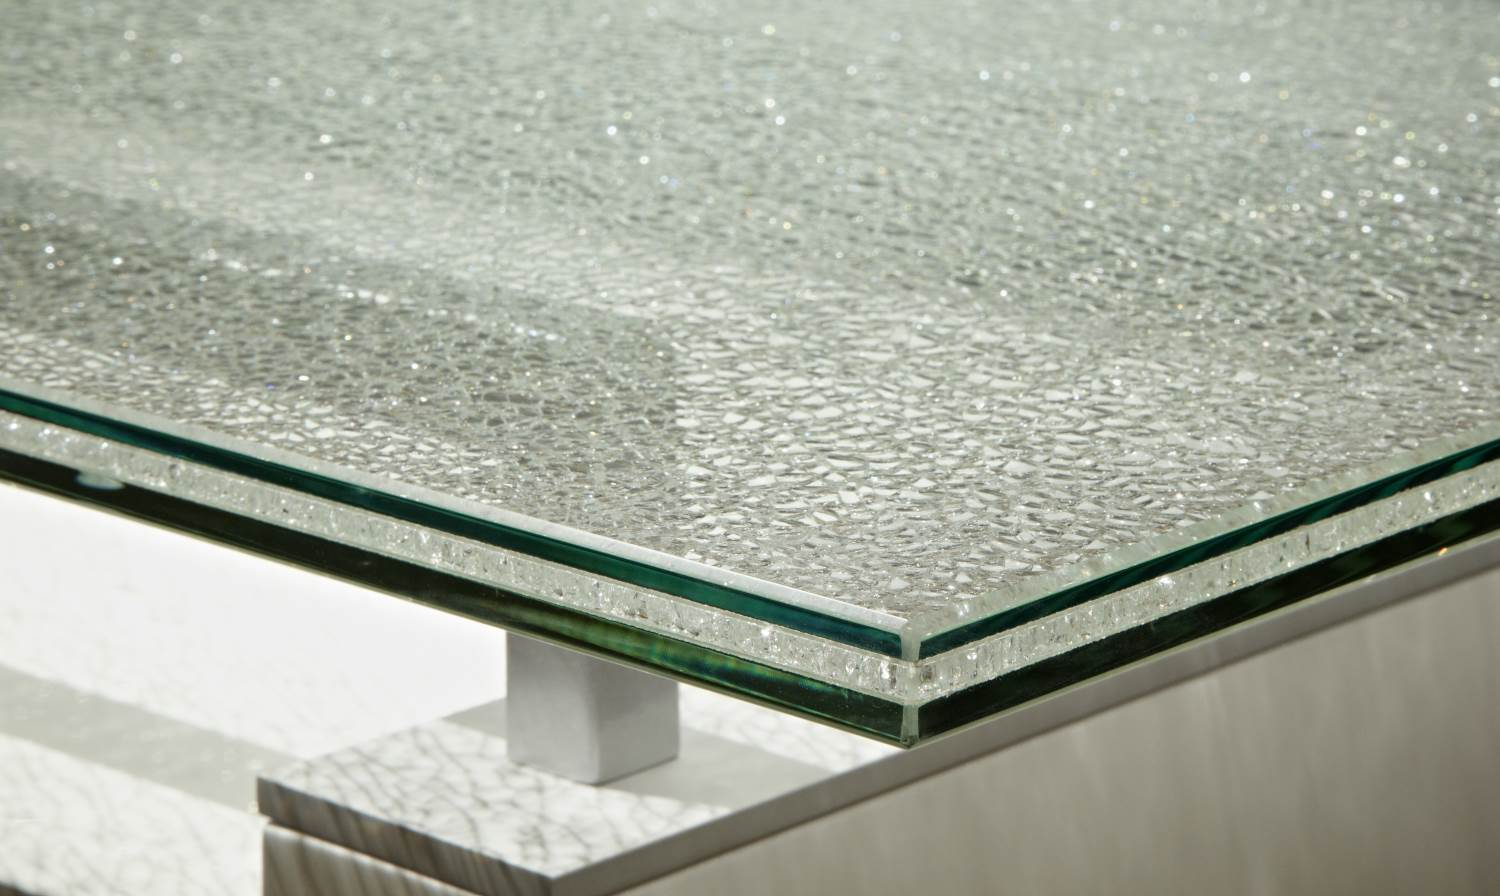 Crackled Square Dining Table Top Boulevard Urban Living - Restaurant glass table tops